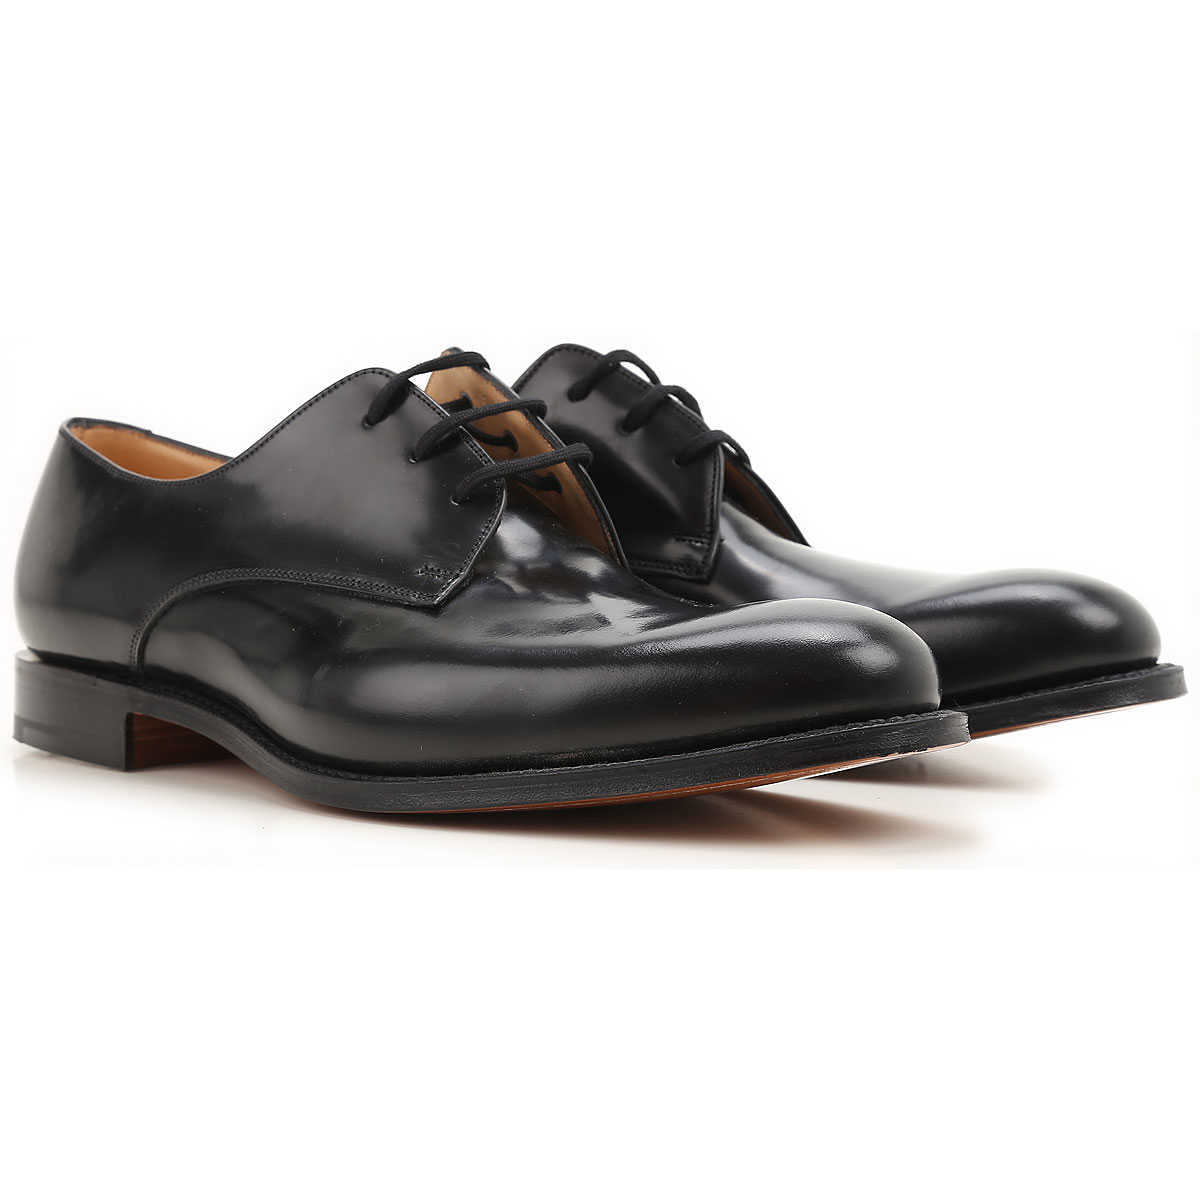 Church's Lace Up Shoes for Men Oxfords 7.5 8 8.5 9 Derbies and Brogues UK - GOOFASH